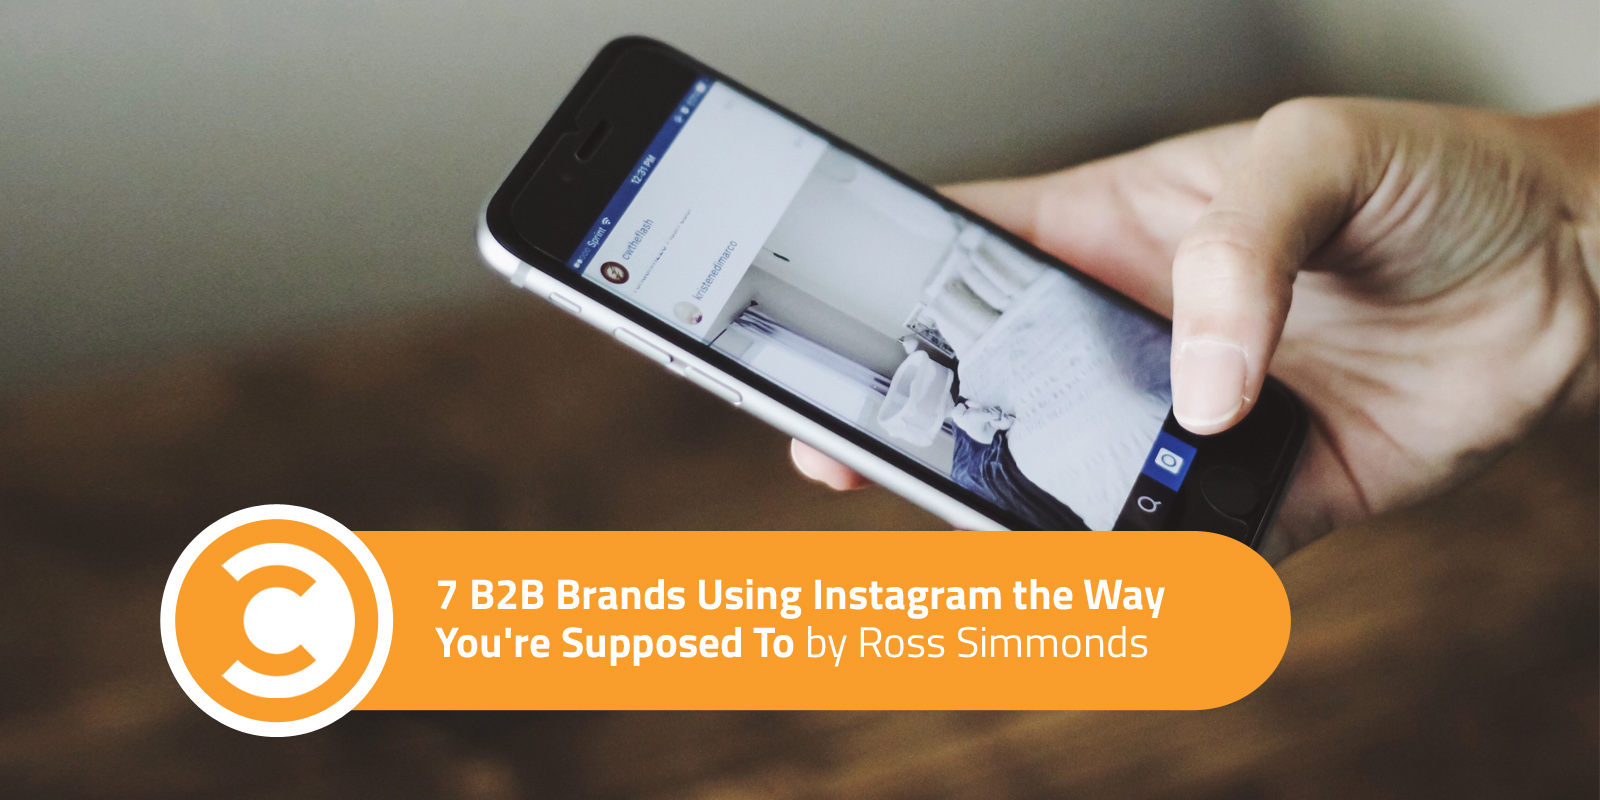 7 B2B Brands Using Instagram the Way You're Supposed To